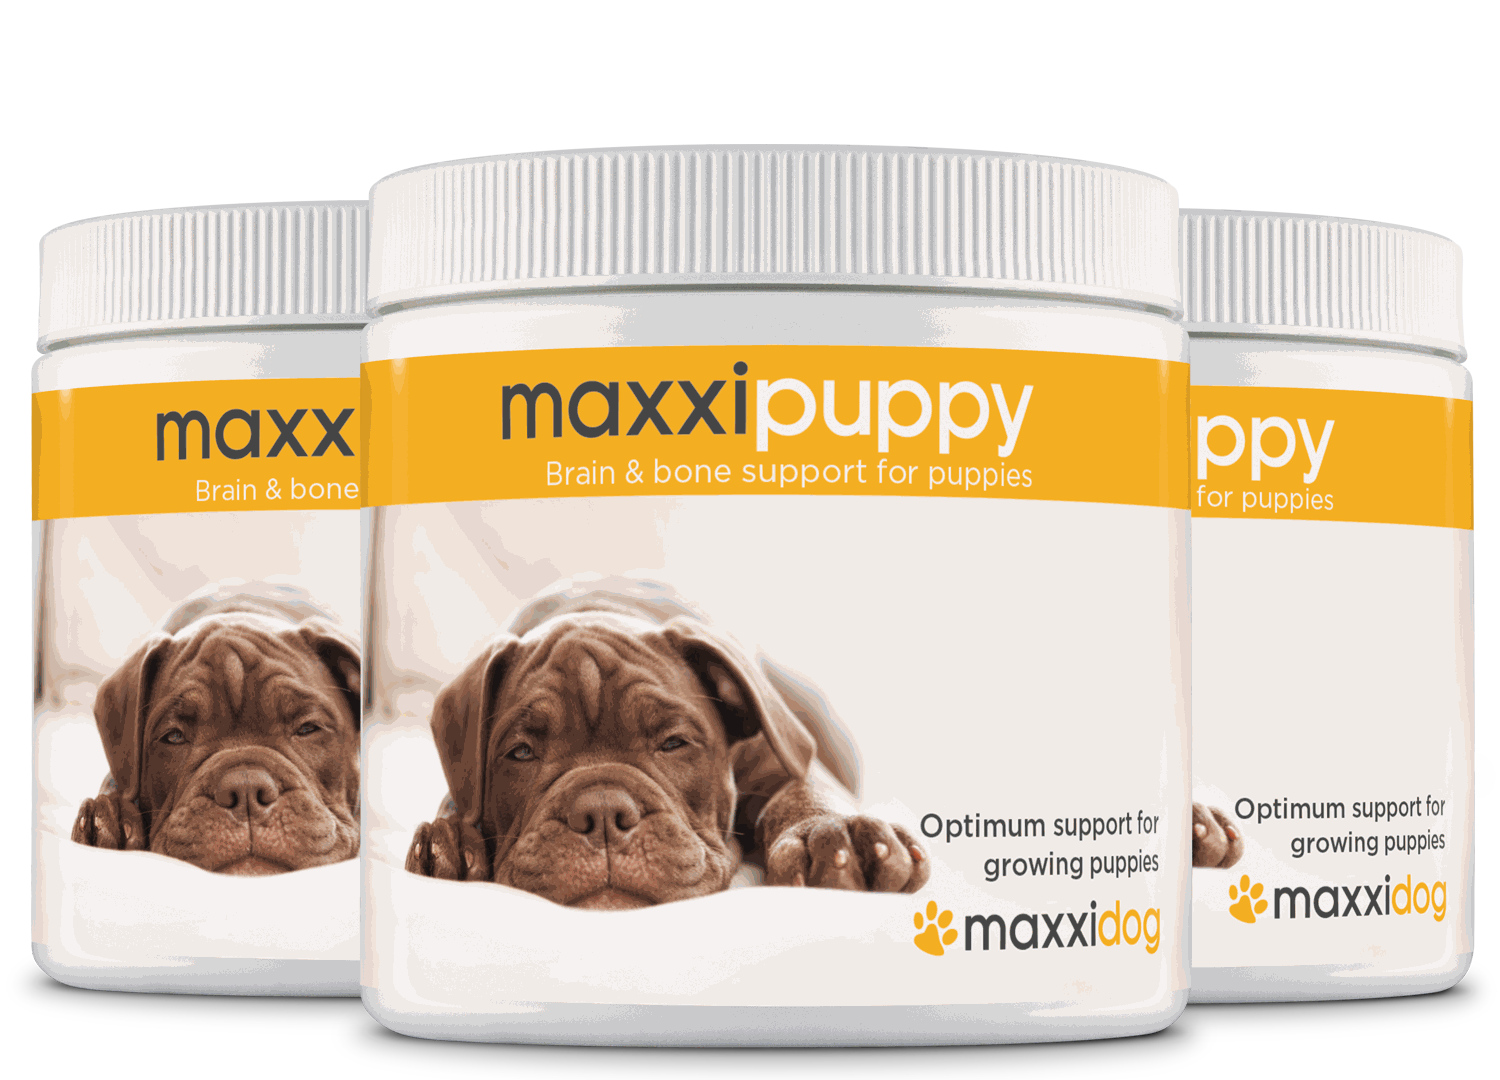 maxxipuppy for dogs-3 bottles